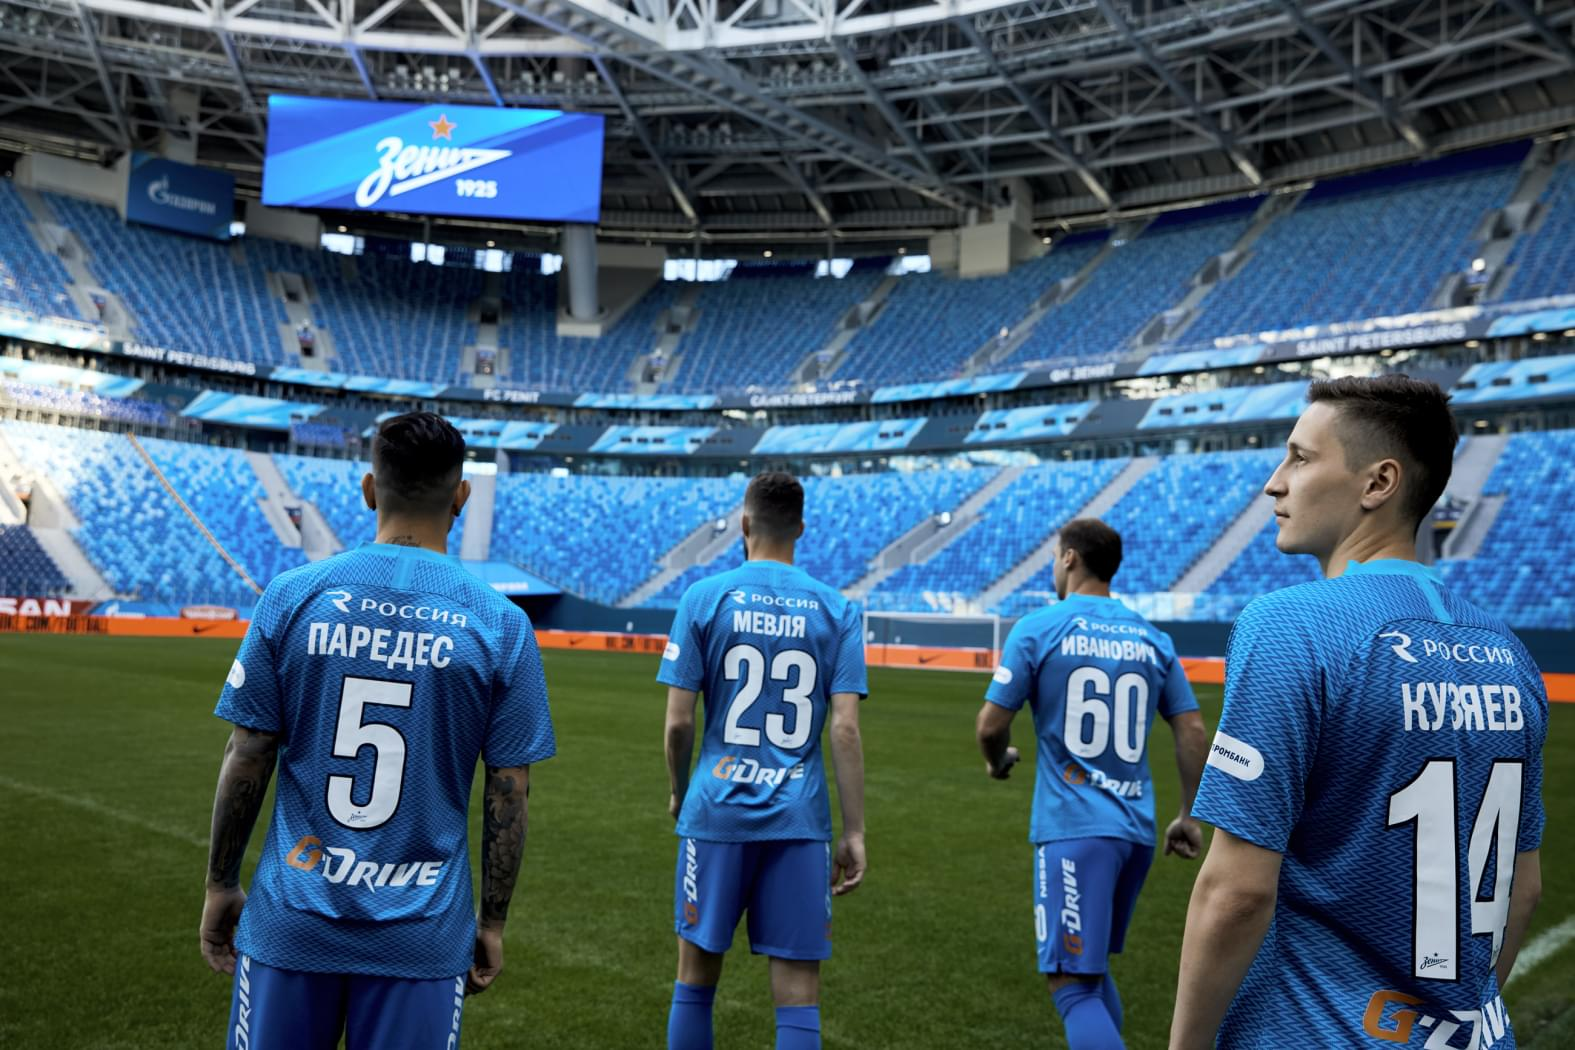 Zenit: FC Zenit Saint Petersburg 2018/19 Nike Home Kit